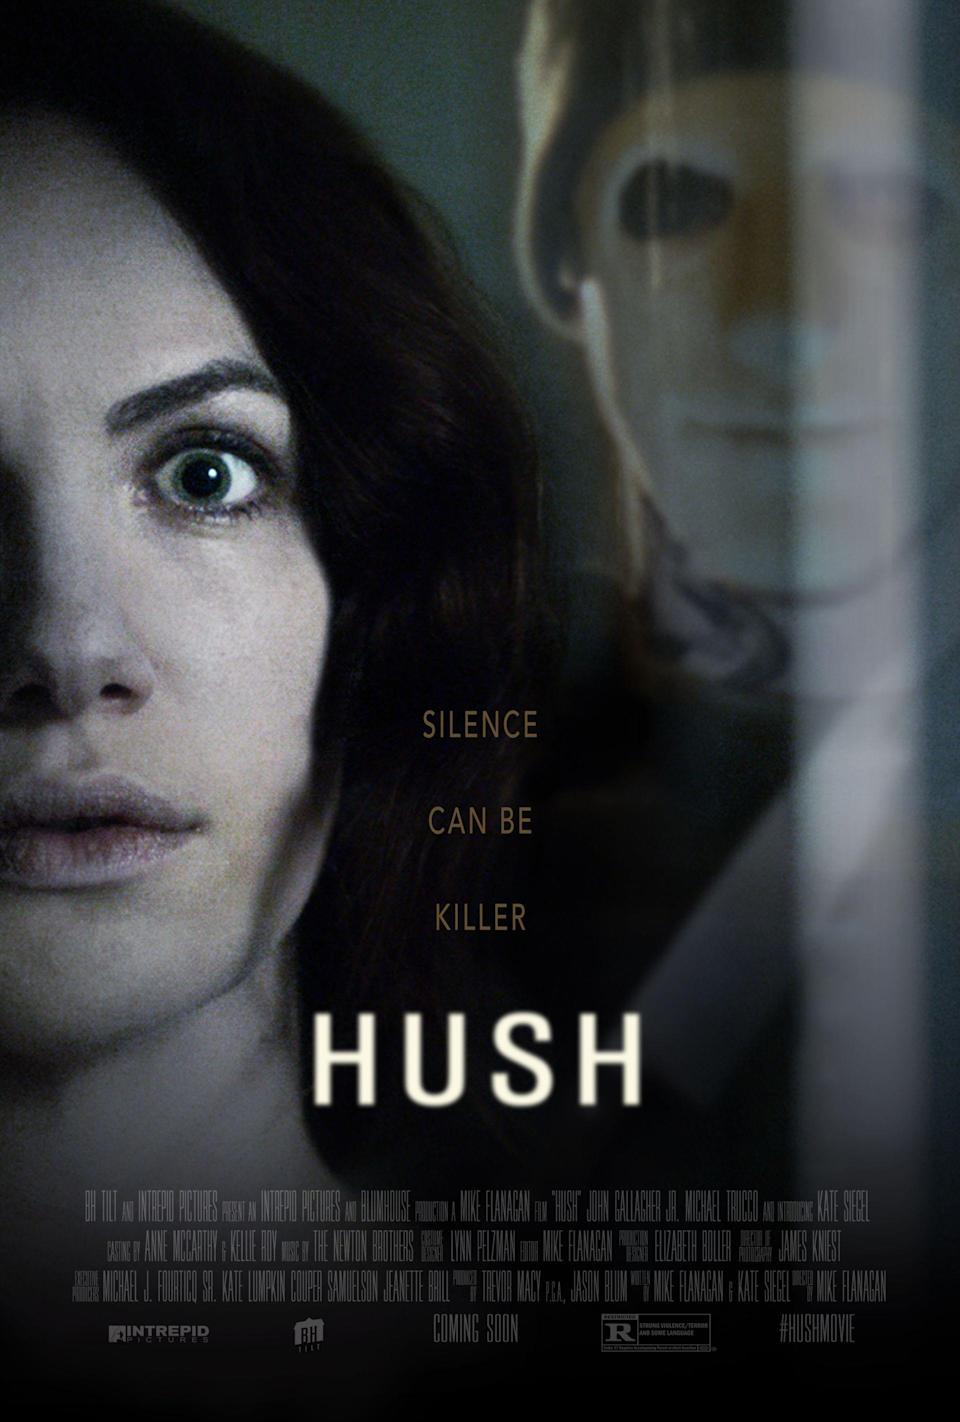 """<p>A deaf writer moves to a remote cabin in the woods. I mean, what could possibly go wrong, right? Oh, of course, a masked murderer starts stalking her and moving in for the kill. It's the sort of basic premise that makes for some of the most tense moments in any horror film. </p> <p><a href=""""https://www.netflix.com/title/80091879"""" rel=""""nofollow noopener"""" target=""""_blank"""" data-ylk=""""slk:Available on Netflix"""" class=""""link rapid-noclick-resp""""><em>Available on Netflix</em></a></p>"""